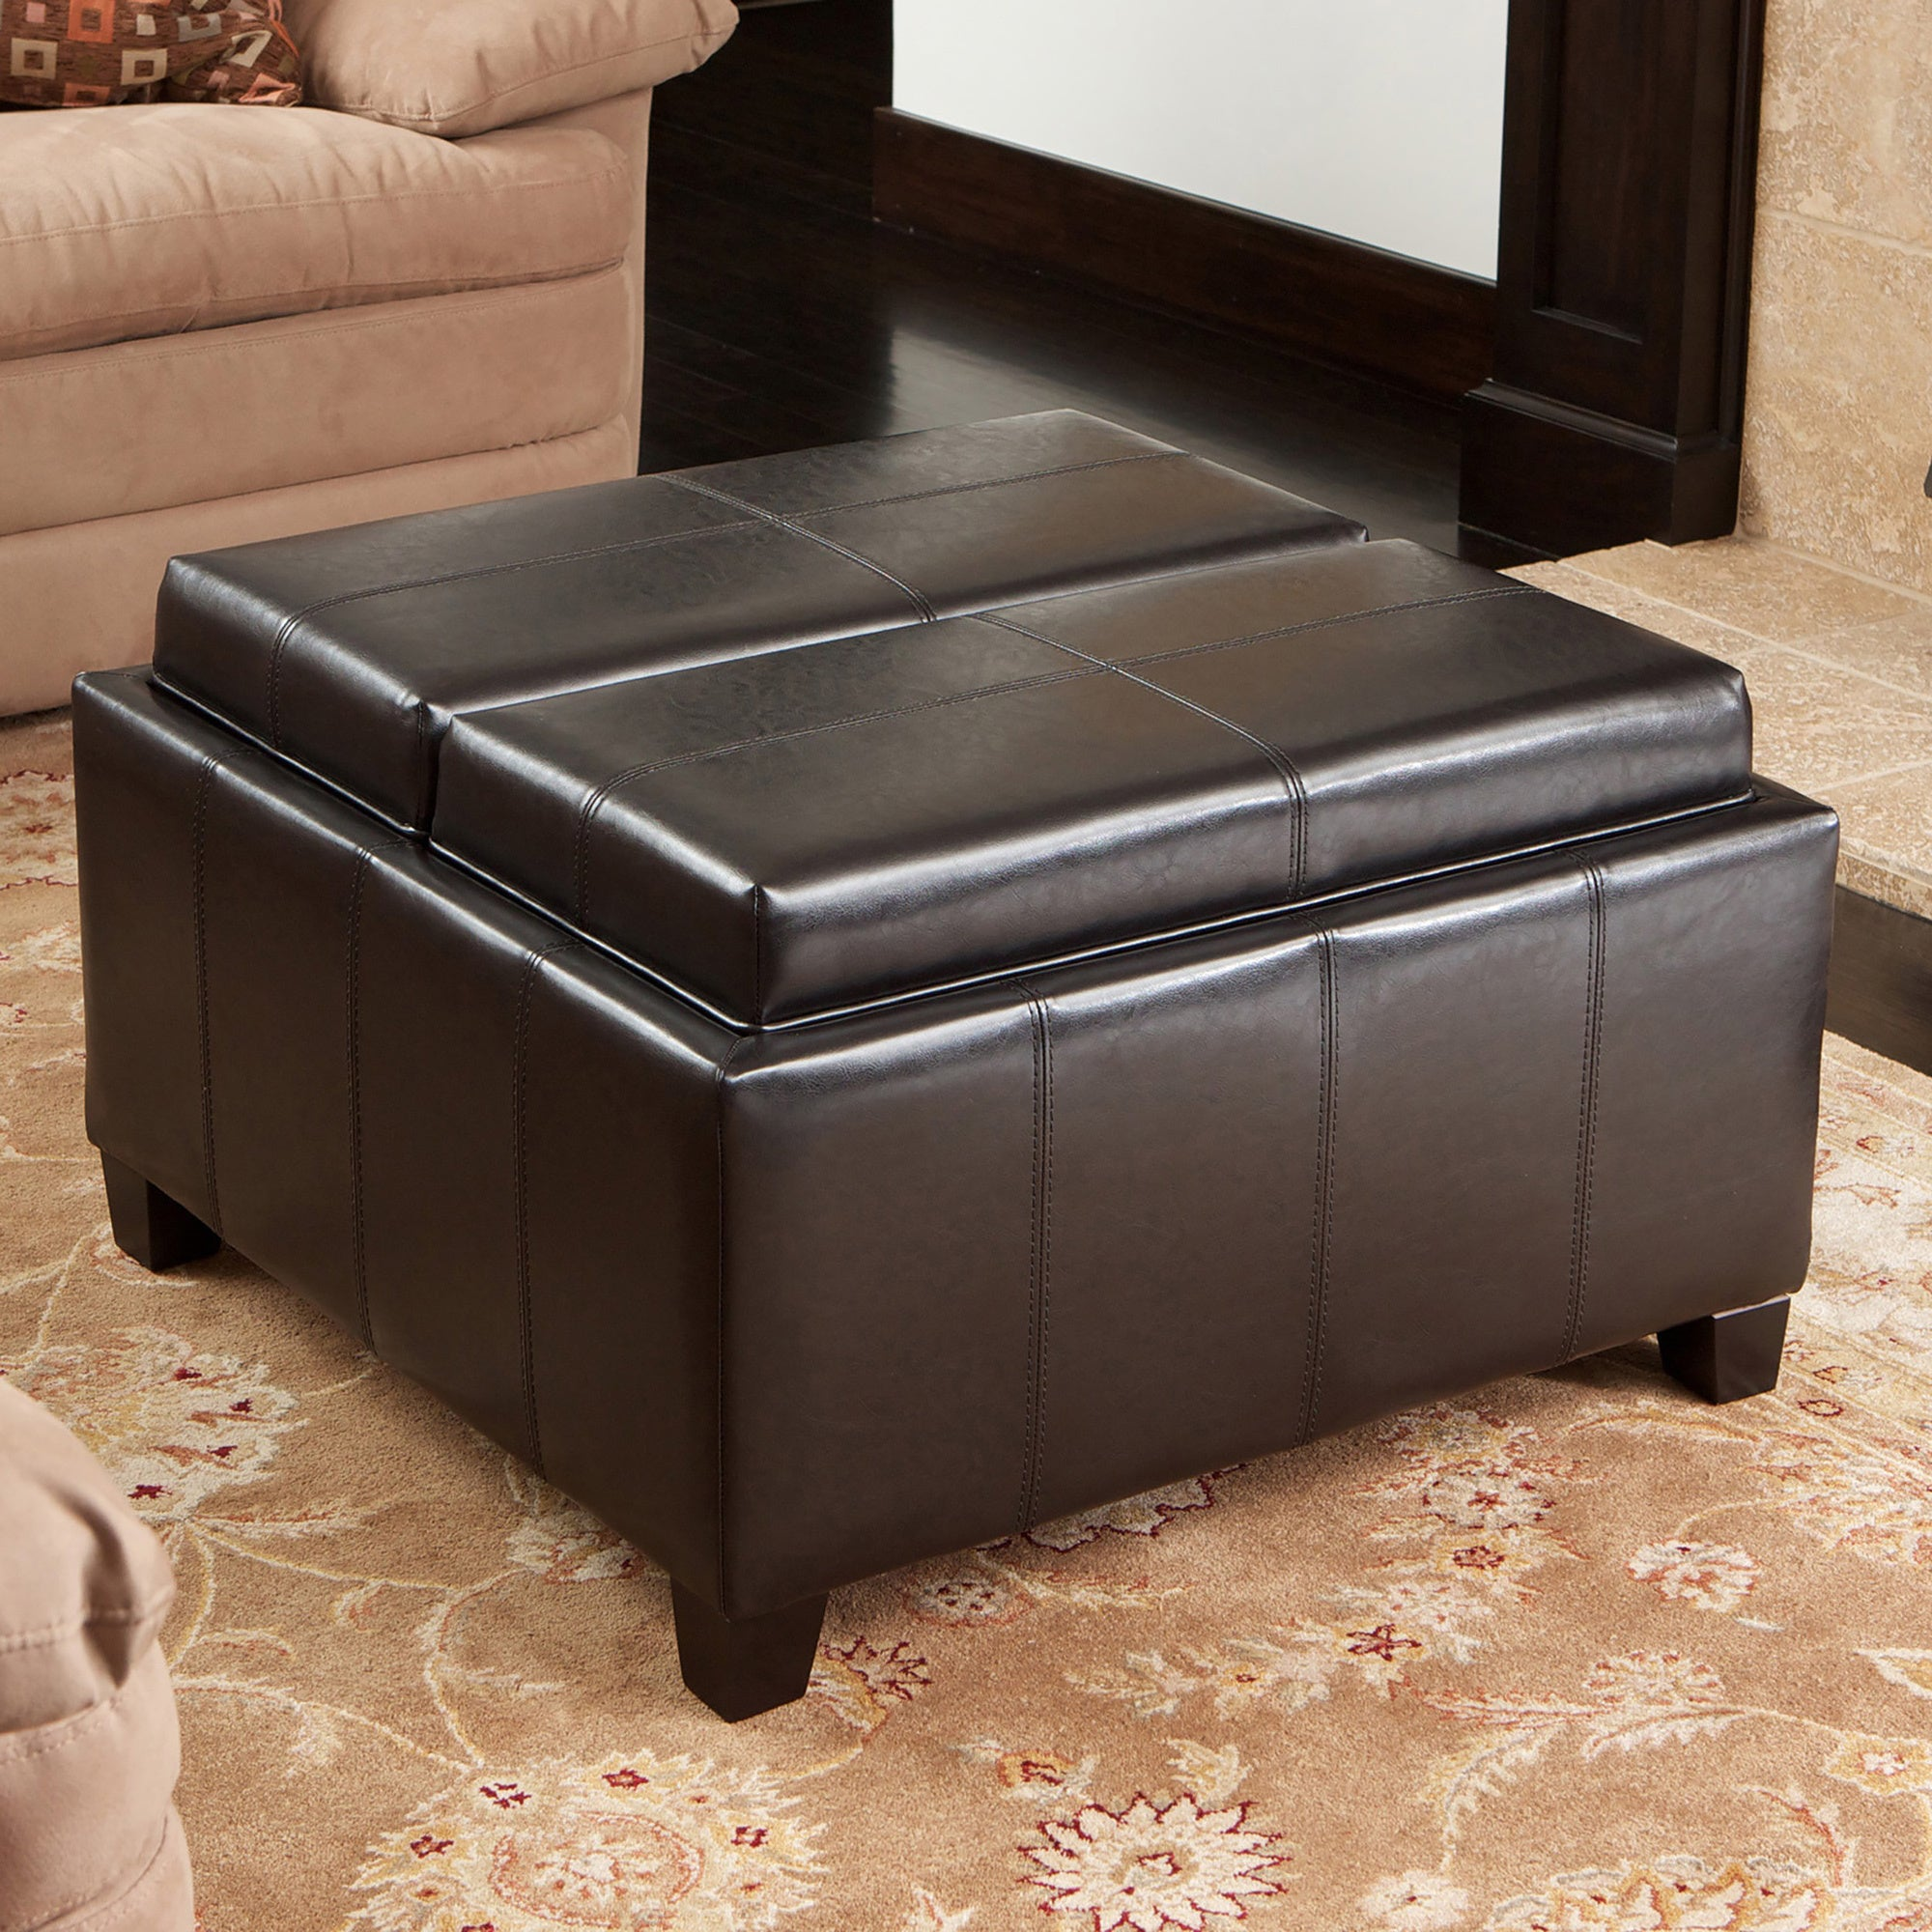 Terrific Mansfield Bonded Leather Espresso Tray Top Storage Ottoman By Christopher Knight Home Caraccident5 Cool Chair Designs And Ideas Caraccident5Info